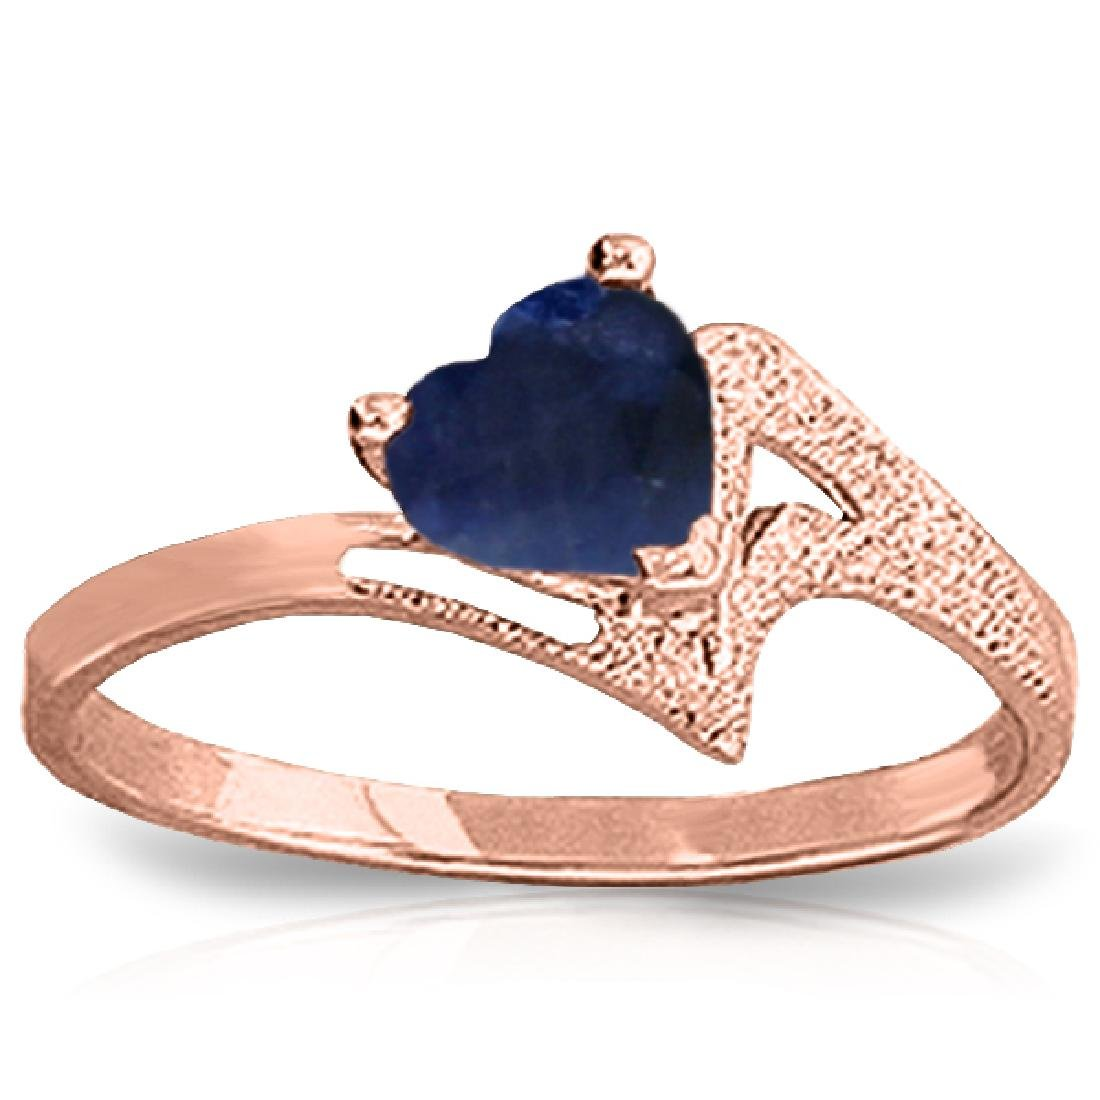 Genuine 1 ctw Sapphire Ring Jewelry 14KT Rose Gold -